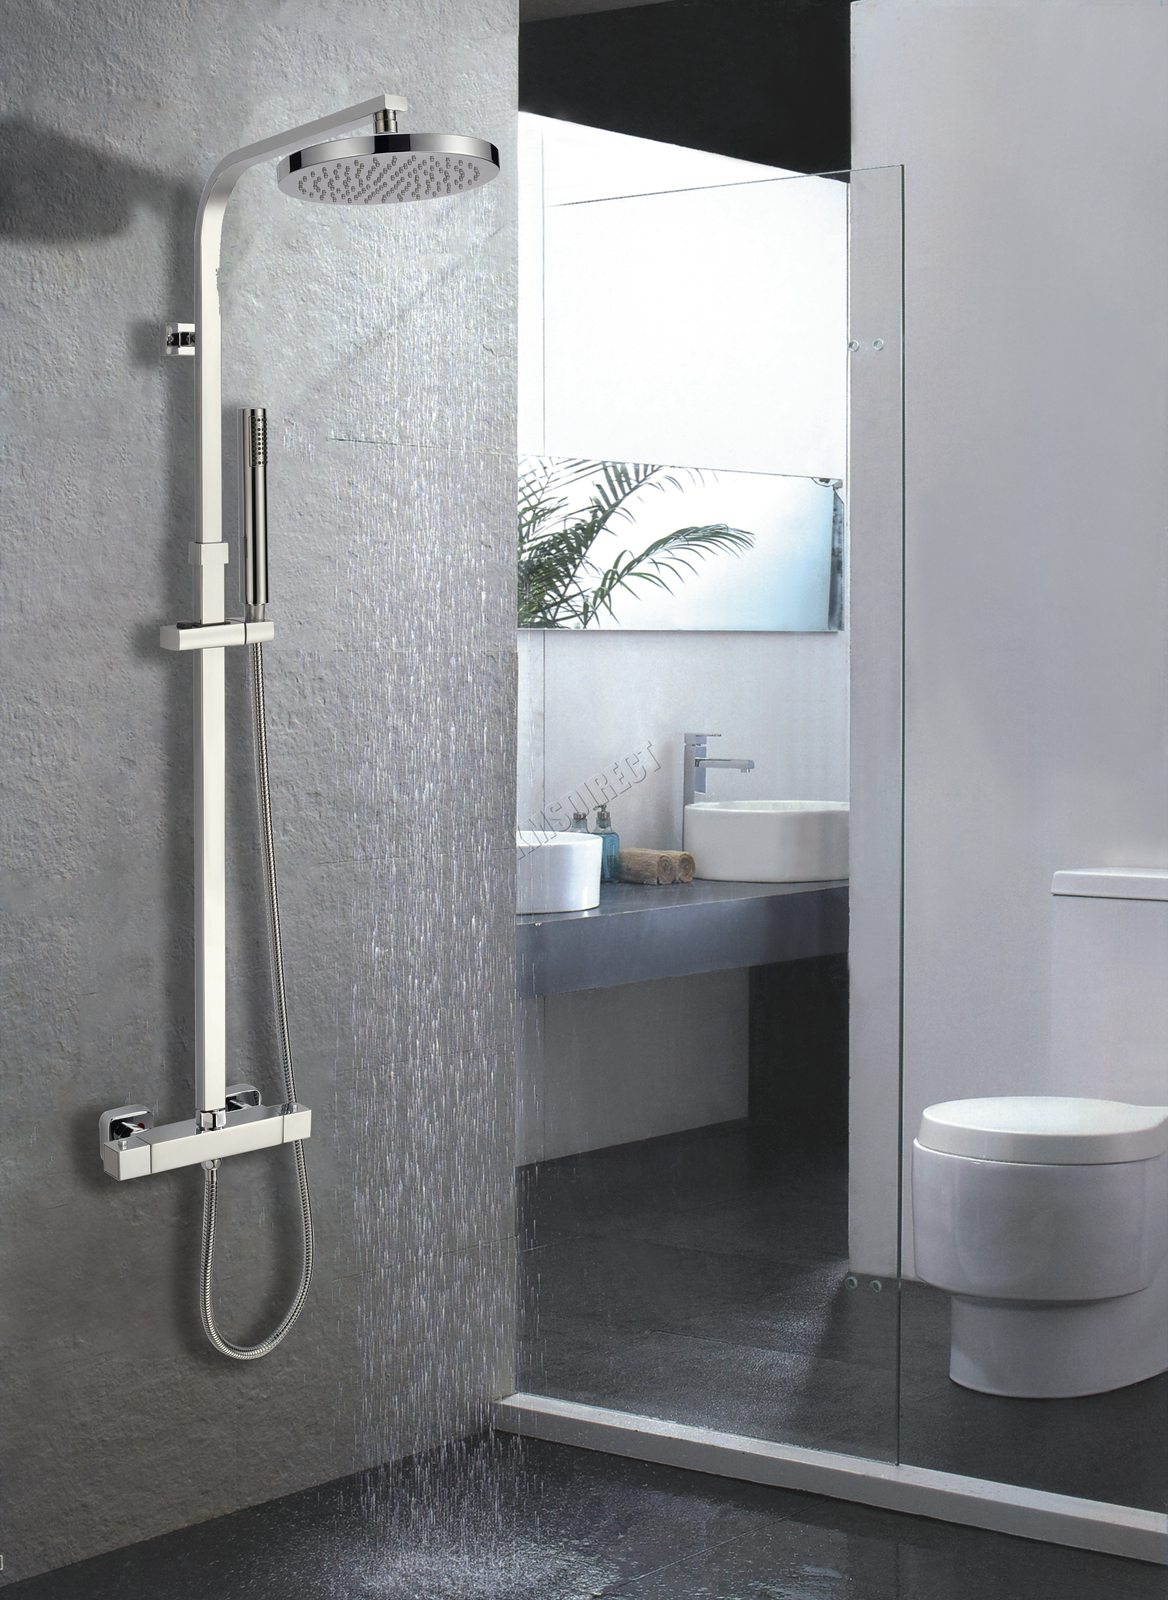 Revetement Mural Salle De Bain Facile A Poser ~ Foxhunter Bathroom Mixer Shower Set Twin Head Round Square Chrome